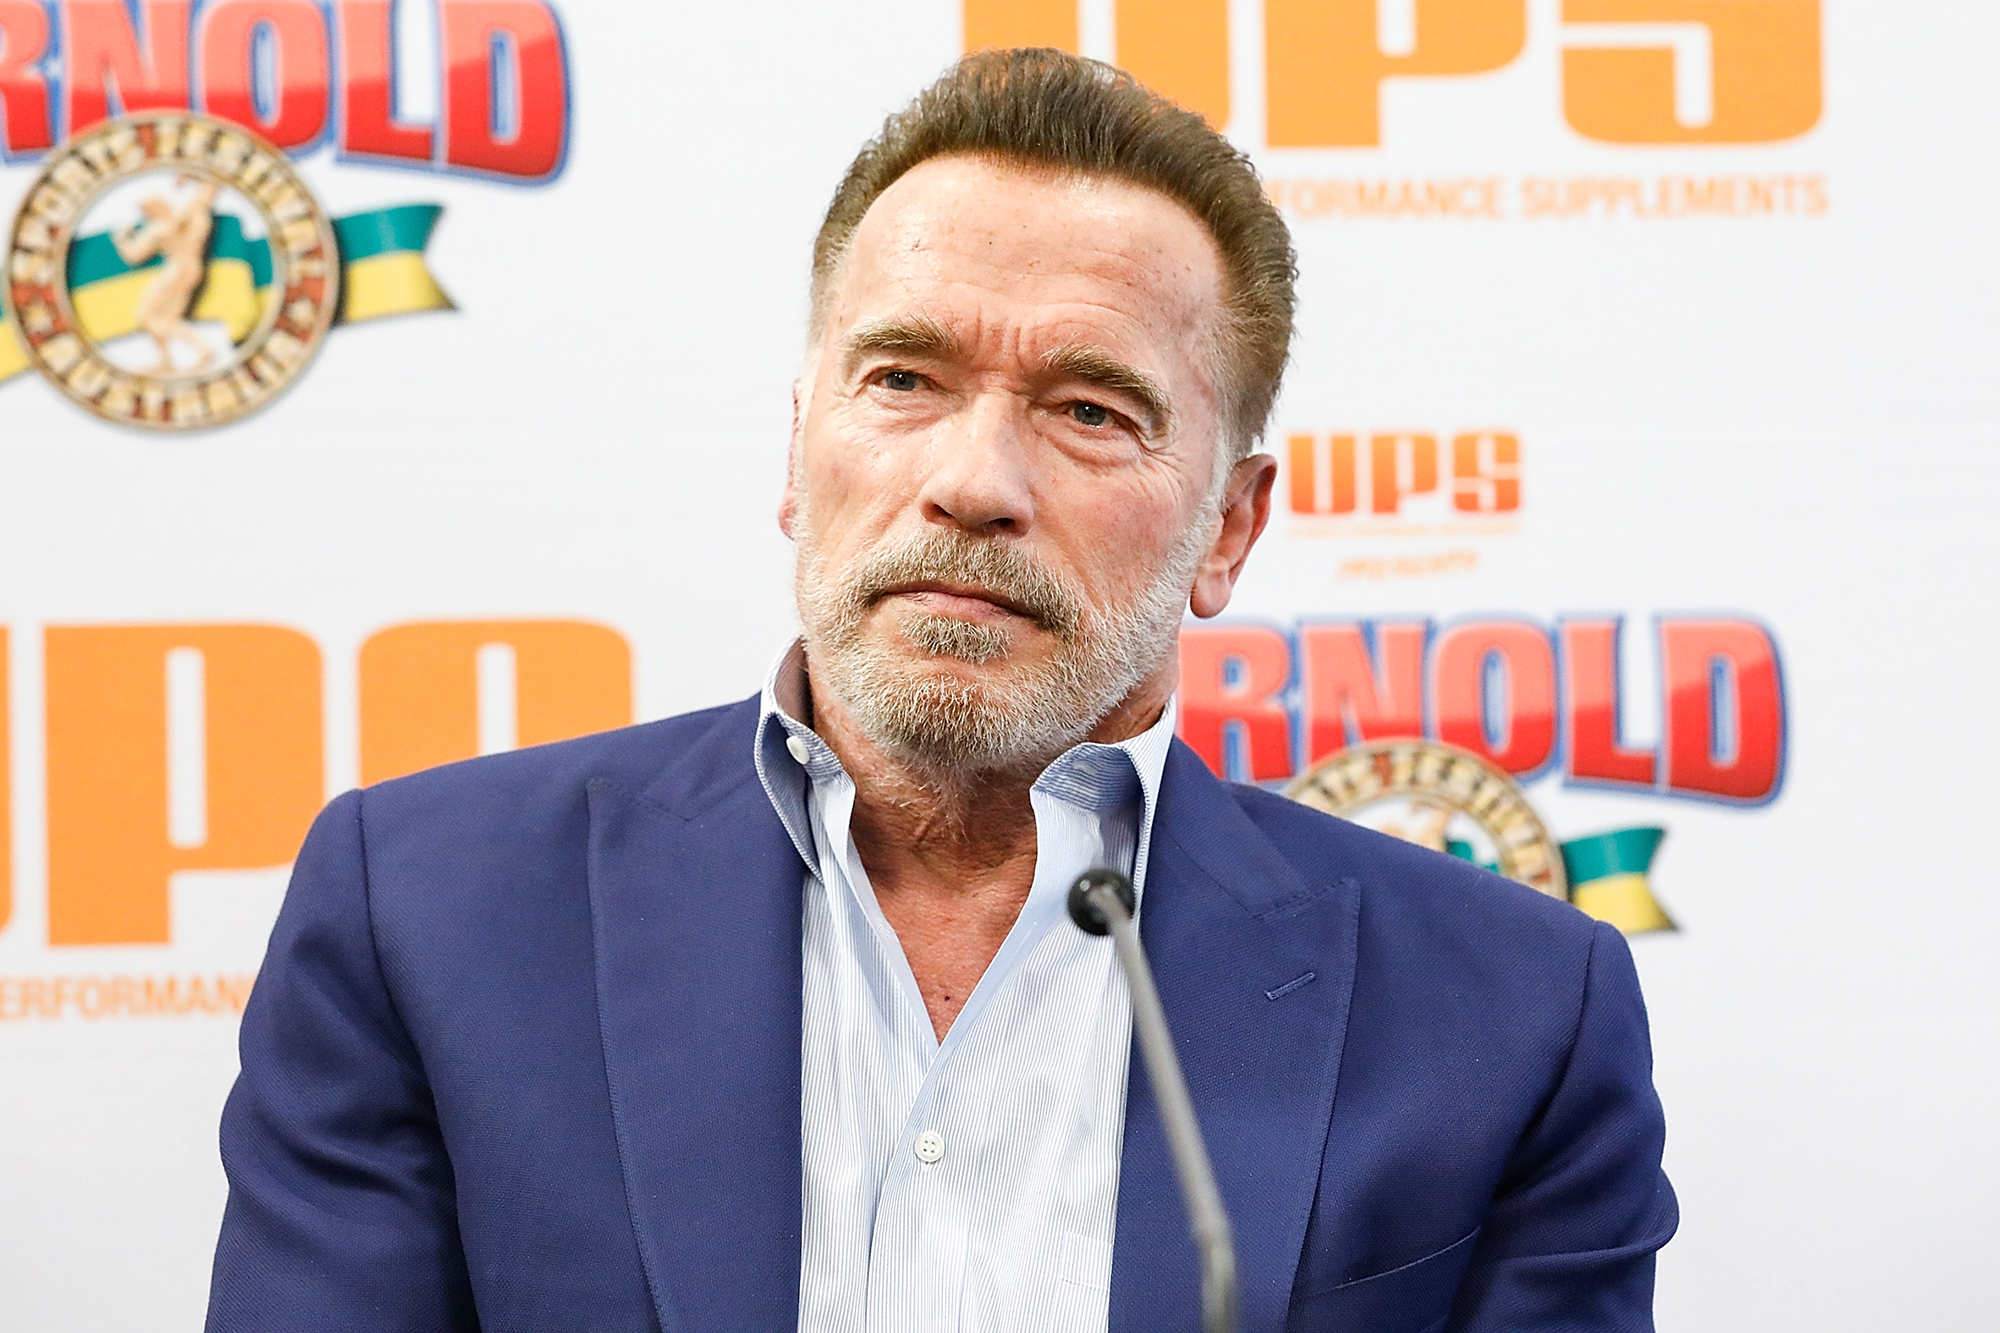 MELBOURNE, AUSTRALIA - MARCH 15: Arnold Schwarzenegger speaks during a press conference on March 15, 2019 in Melbourne, Australia. (Photo by Sam Tabone/WireImage)